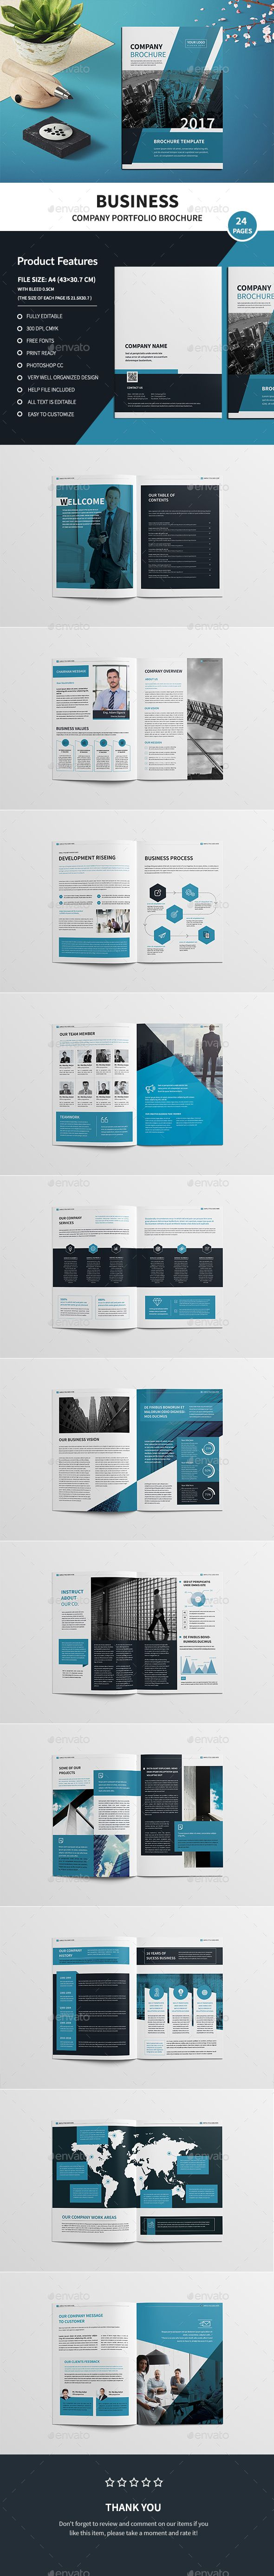 Company Profile Brochure 141 best Design images